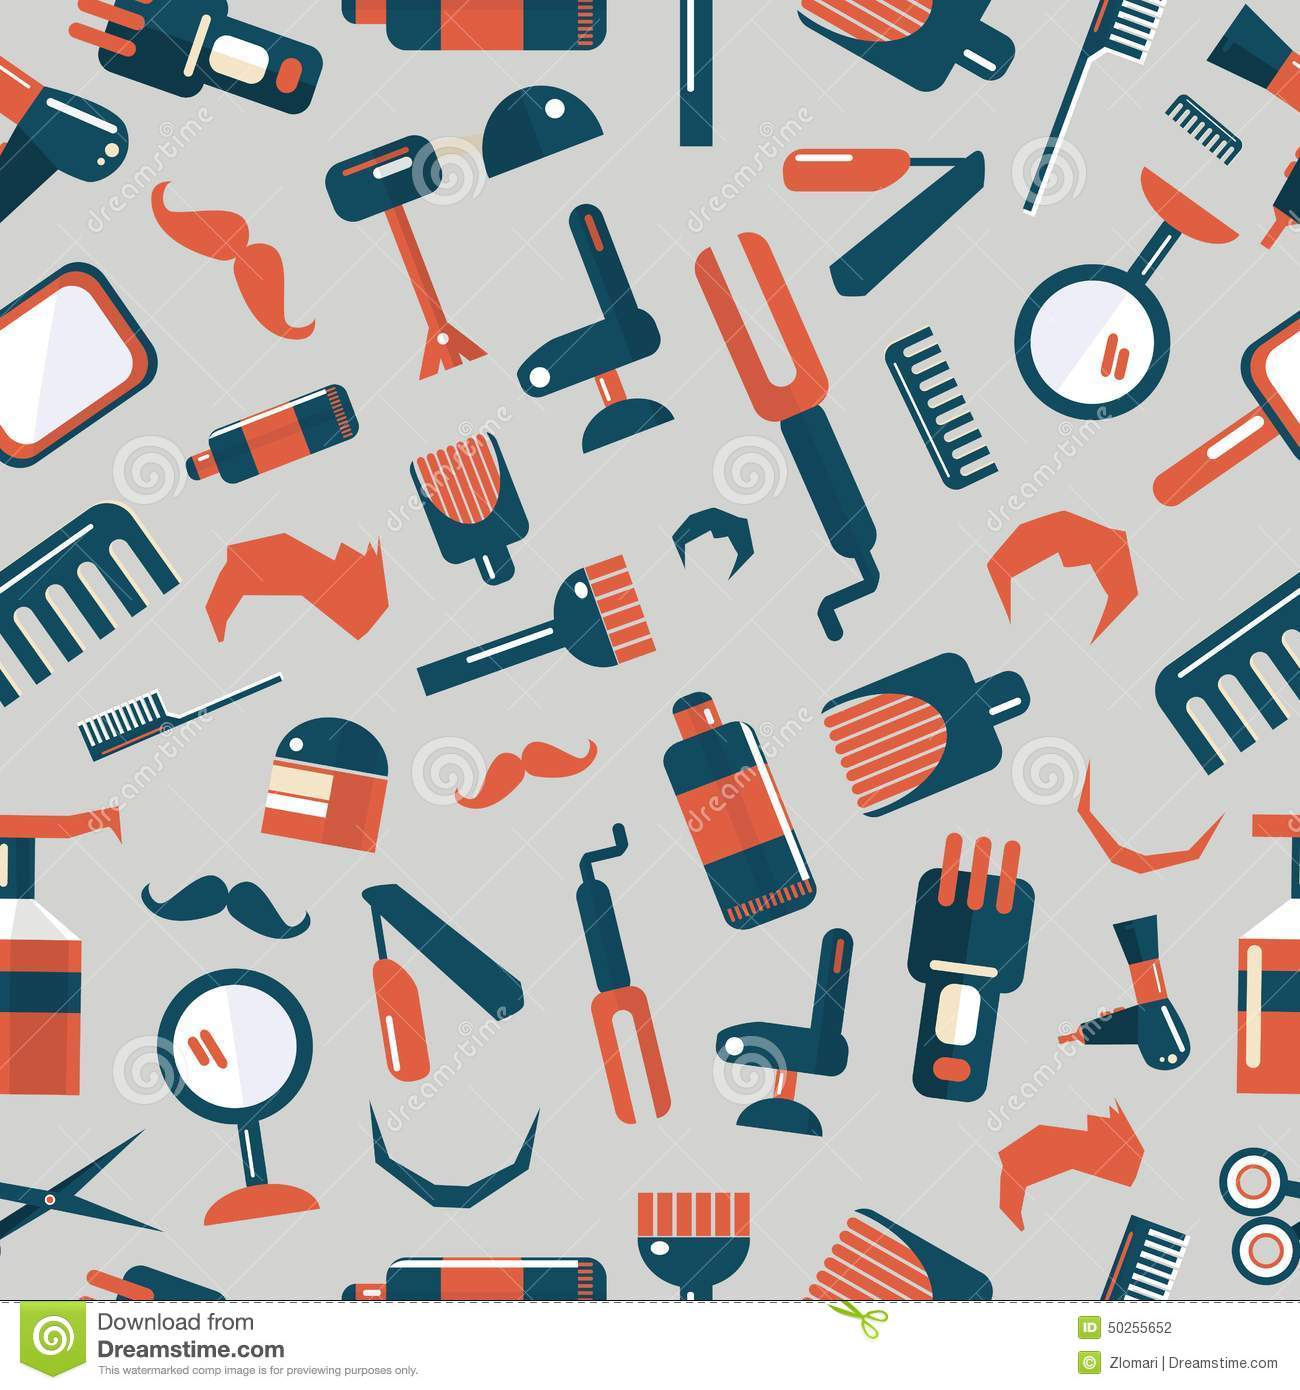 Barber Background : Barber shop seamless pattern on a gray background.